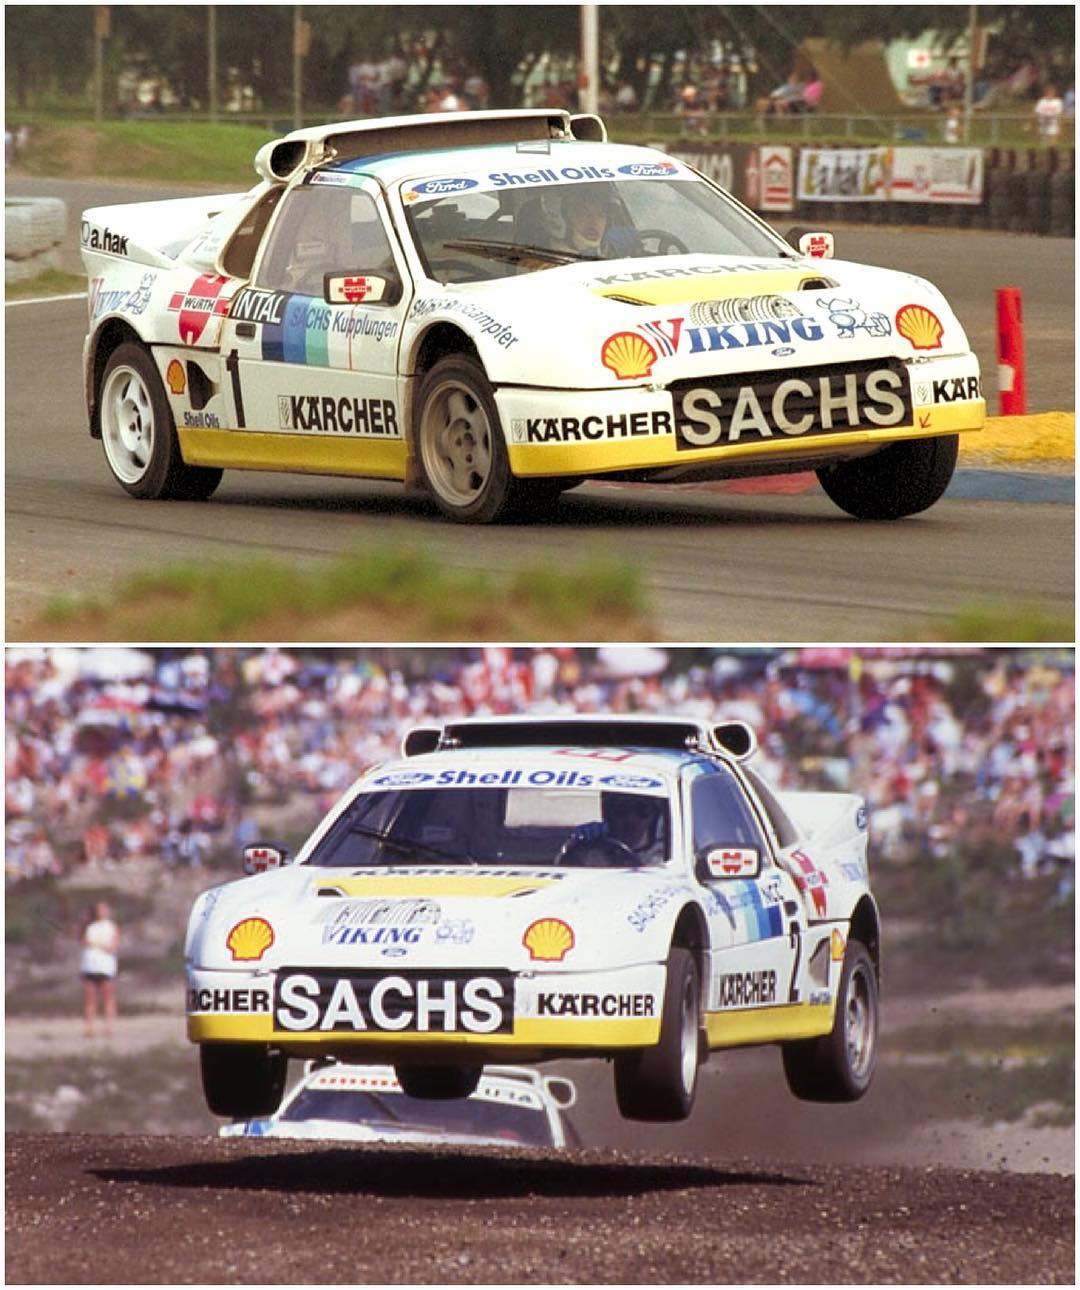 Whilst doing some research on this weekend's @FIAWorldRX race in Höljes, Sweden, I came across some great photos of this Ford RS200 driven by rallycross legend Martin Schanche. Many of the Group B rally beasts were converted to rallycross spec once...